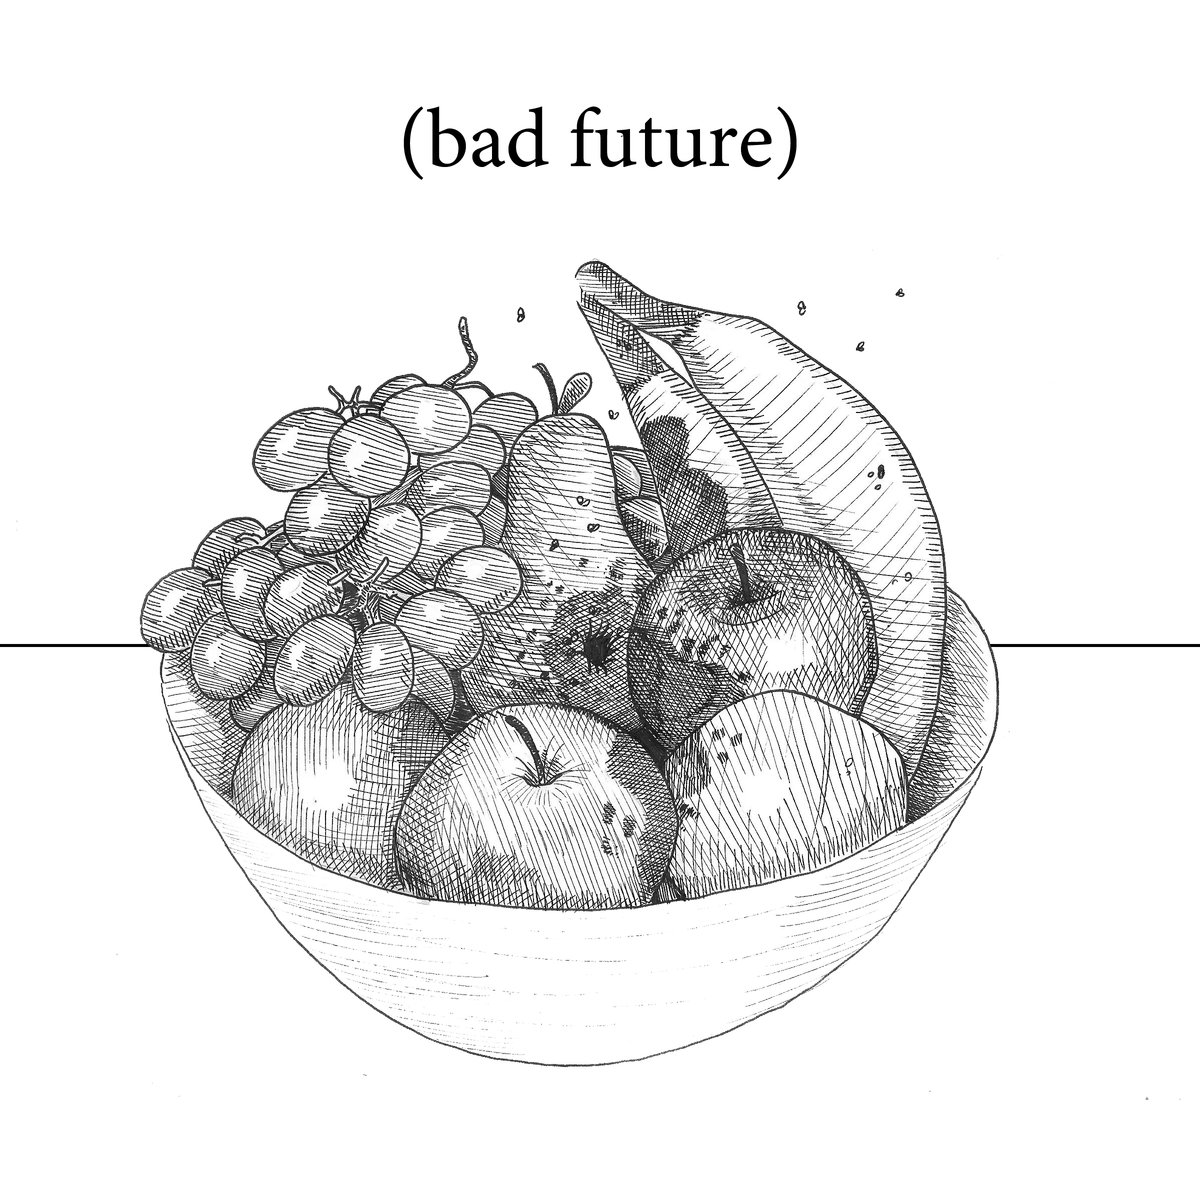 how to draw fruit in a bowl fruit bowl dwg drawing cad blocks free draw fruit a to how bowl in